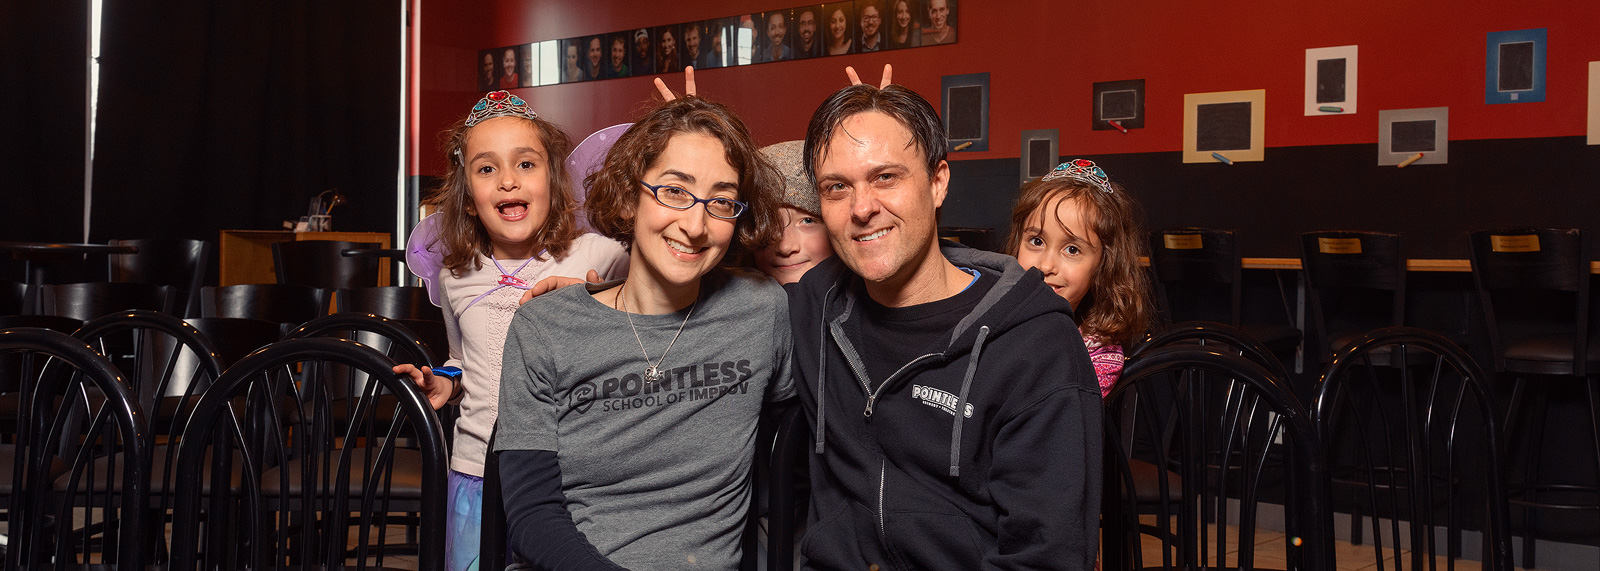 Tori and Jason Tomalia with their kids at Pointless Brewery & Theatre <span class=&apos;image-credits&apos;>Doug Coombe</span>